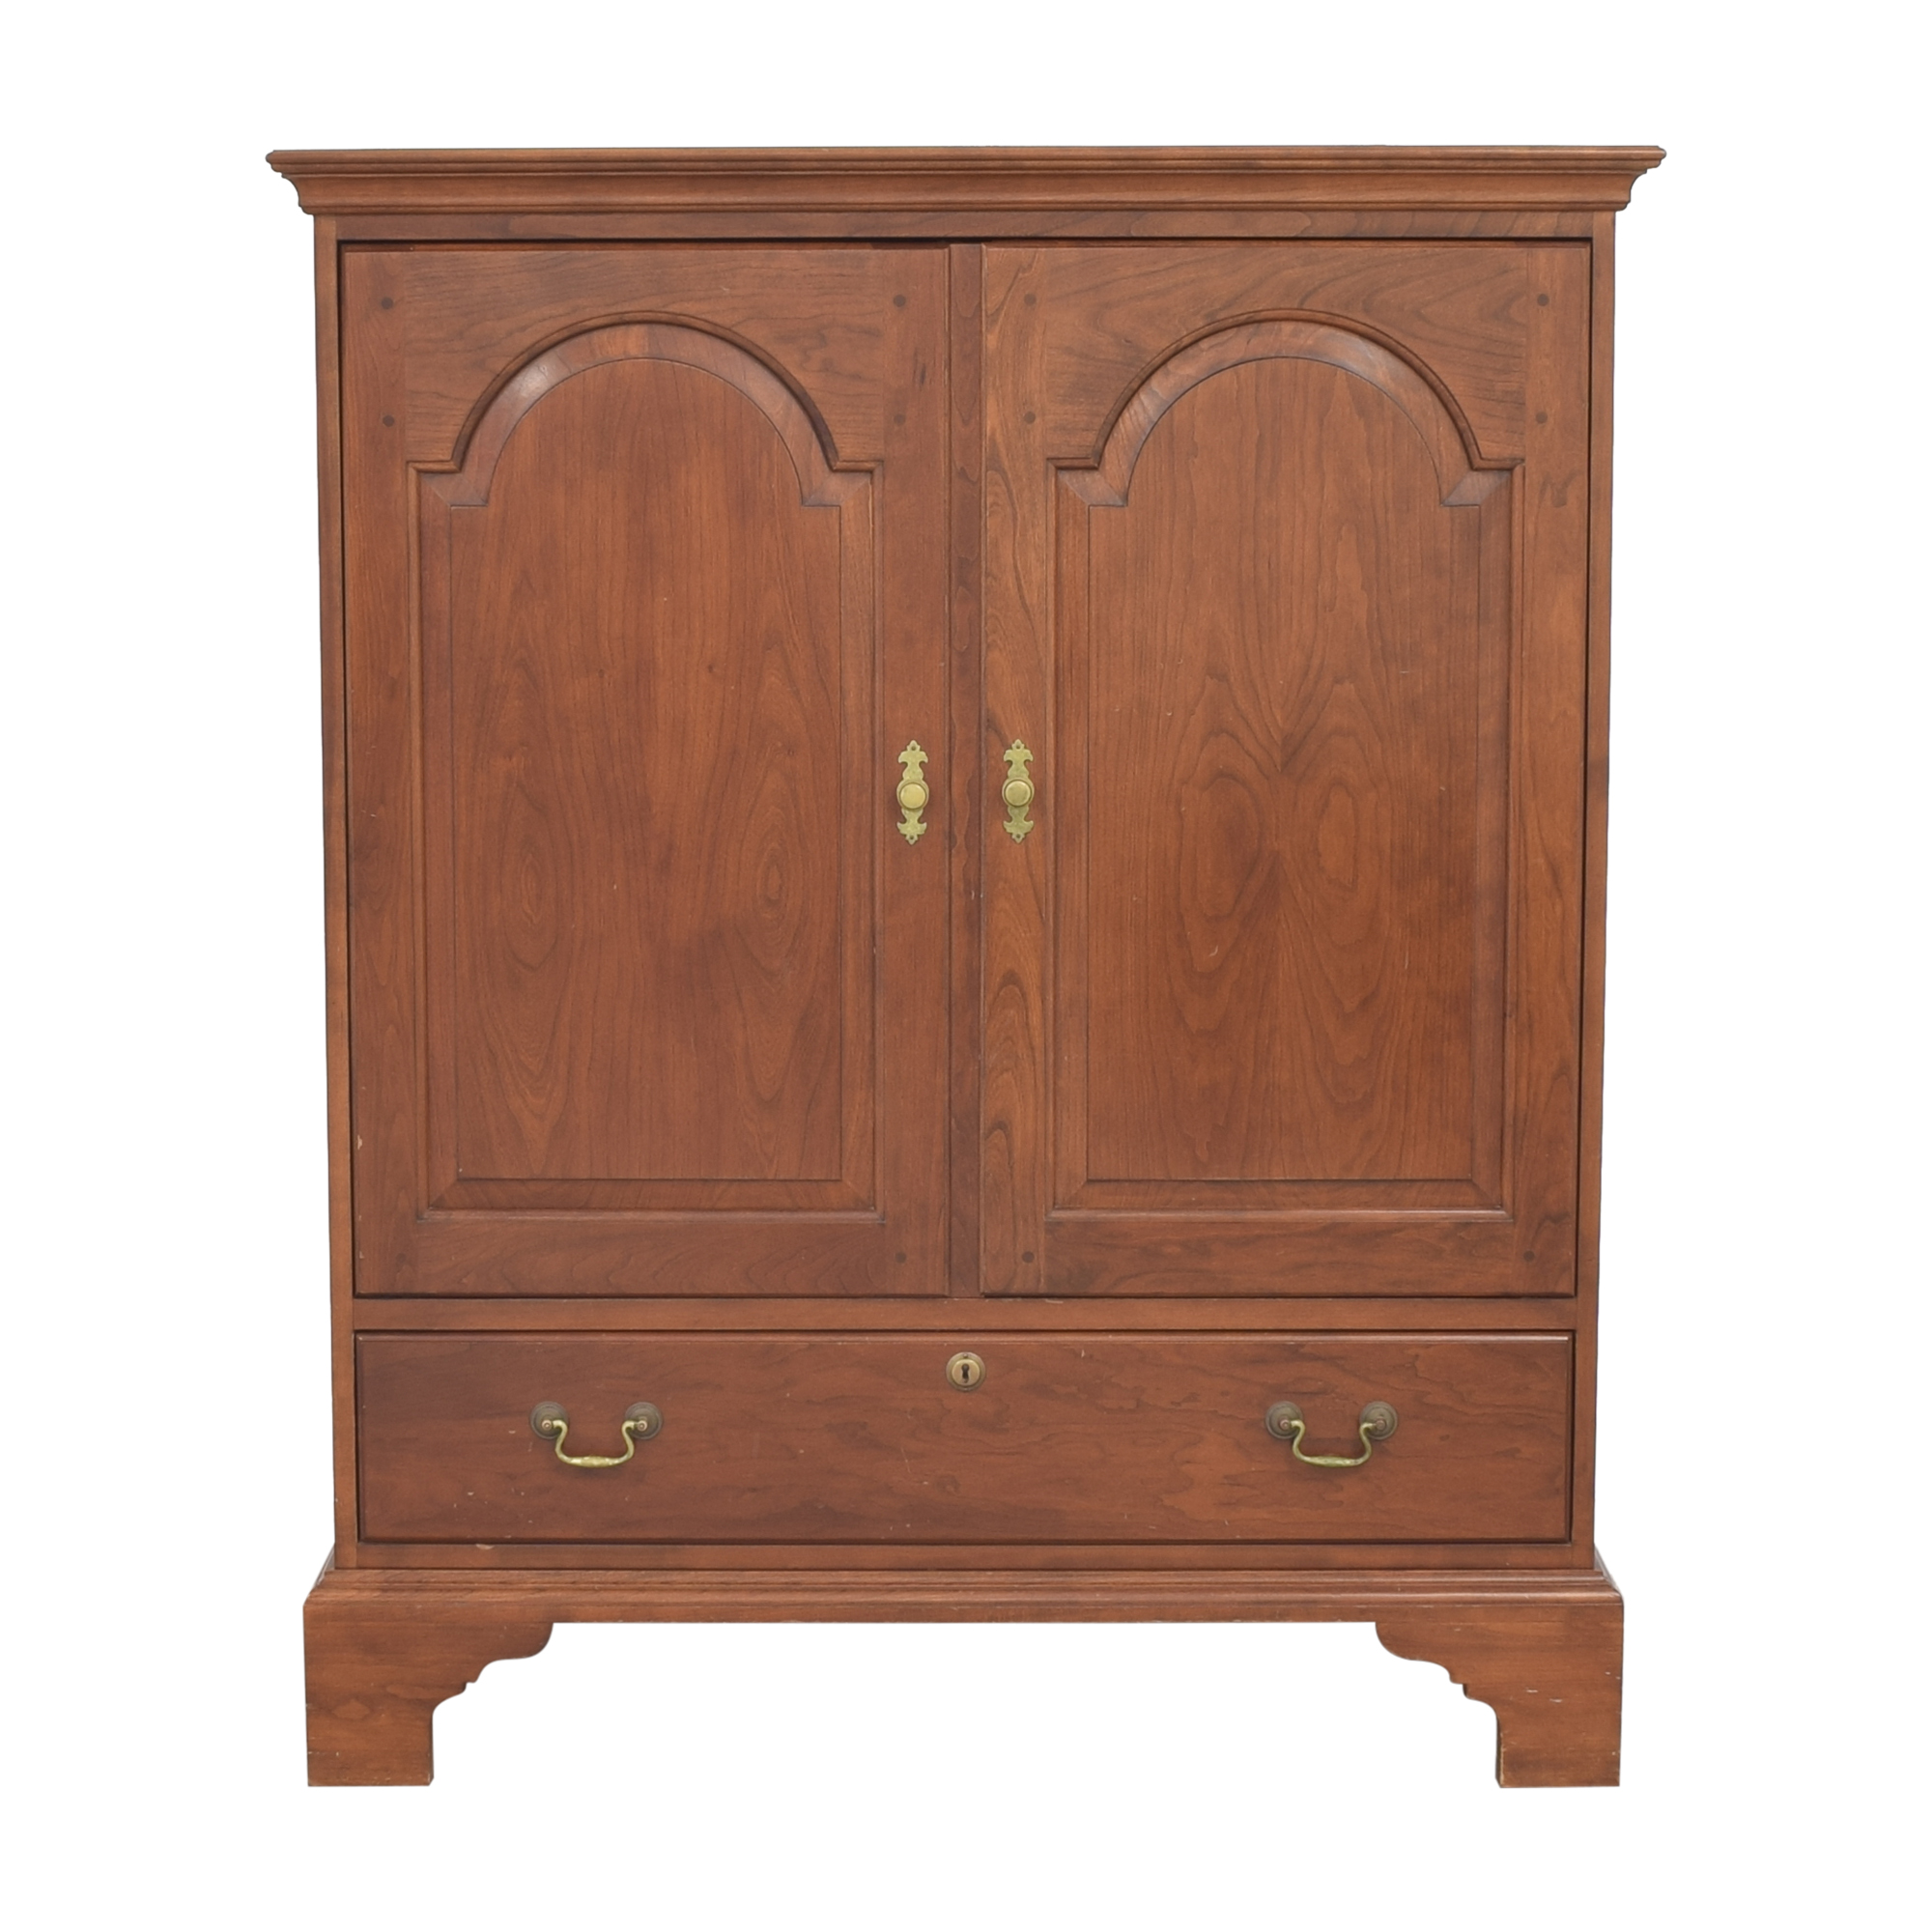 Stickley Furniture Stickley Furniture Media Cabinet nyc